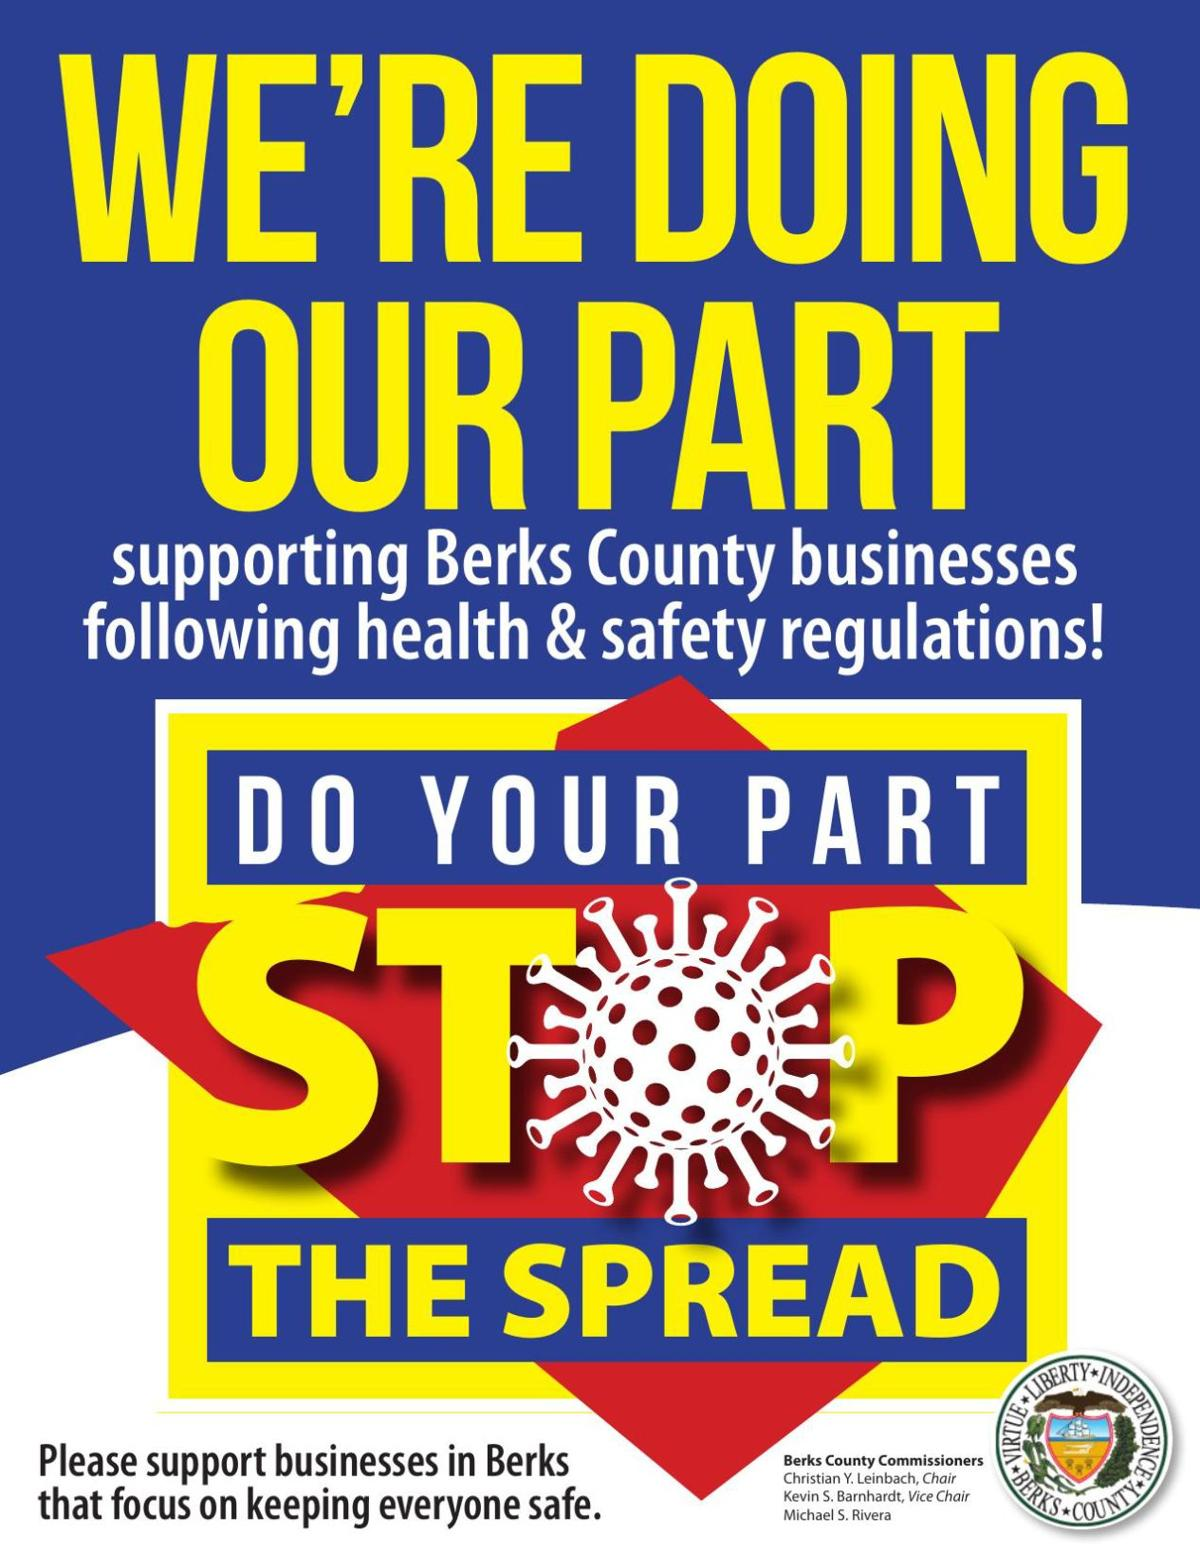 Berks 'We're Doing Our Part to Stop the Spread' poster